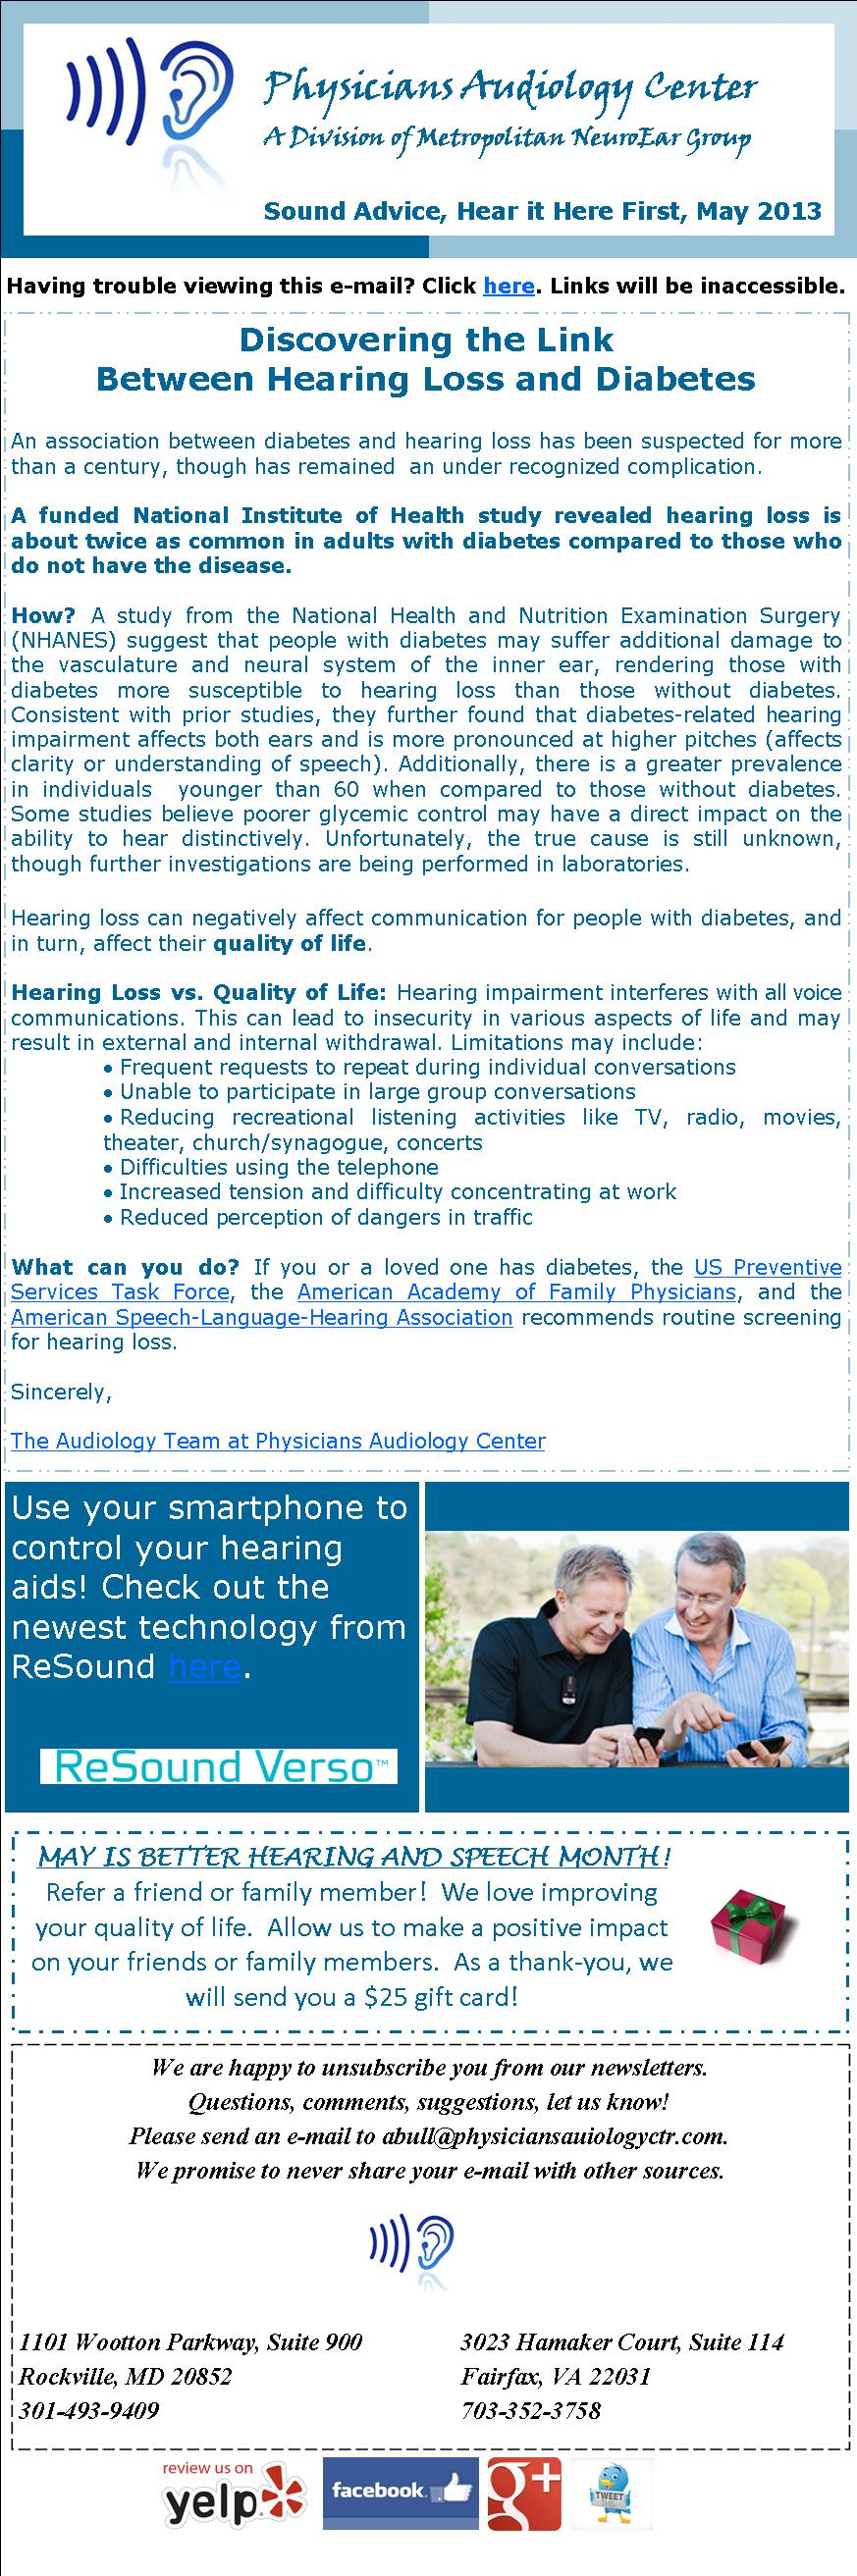 Physicians Audiology Center Newsletter Issue 3  May 2013: Discovering the Link Between Hearing Loss and Diabetes